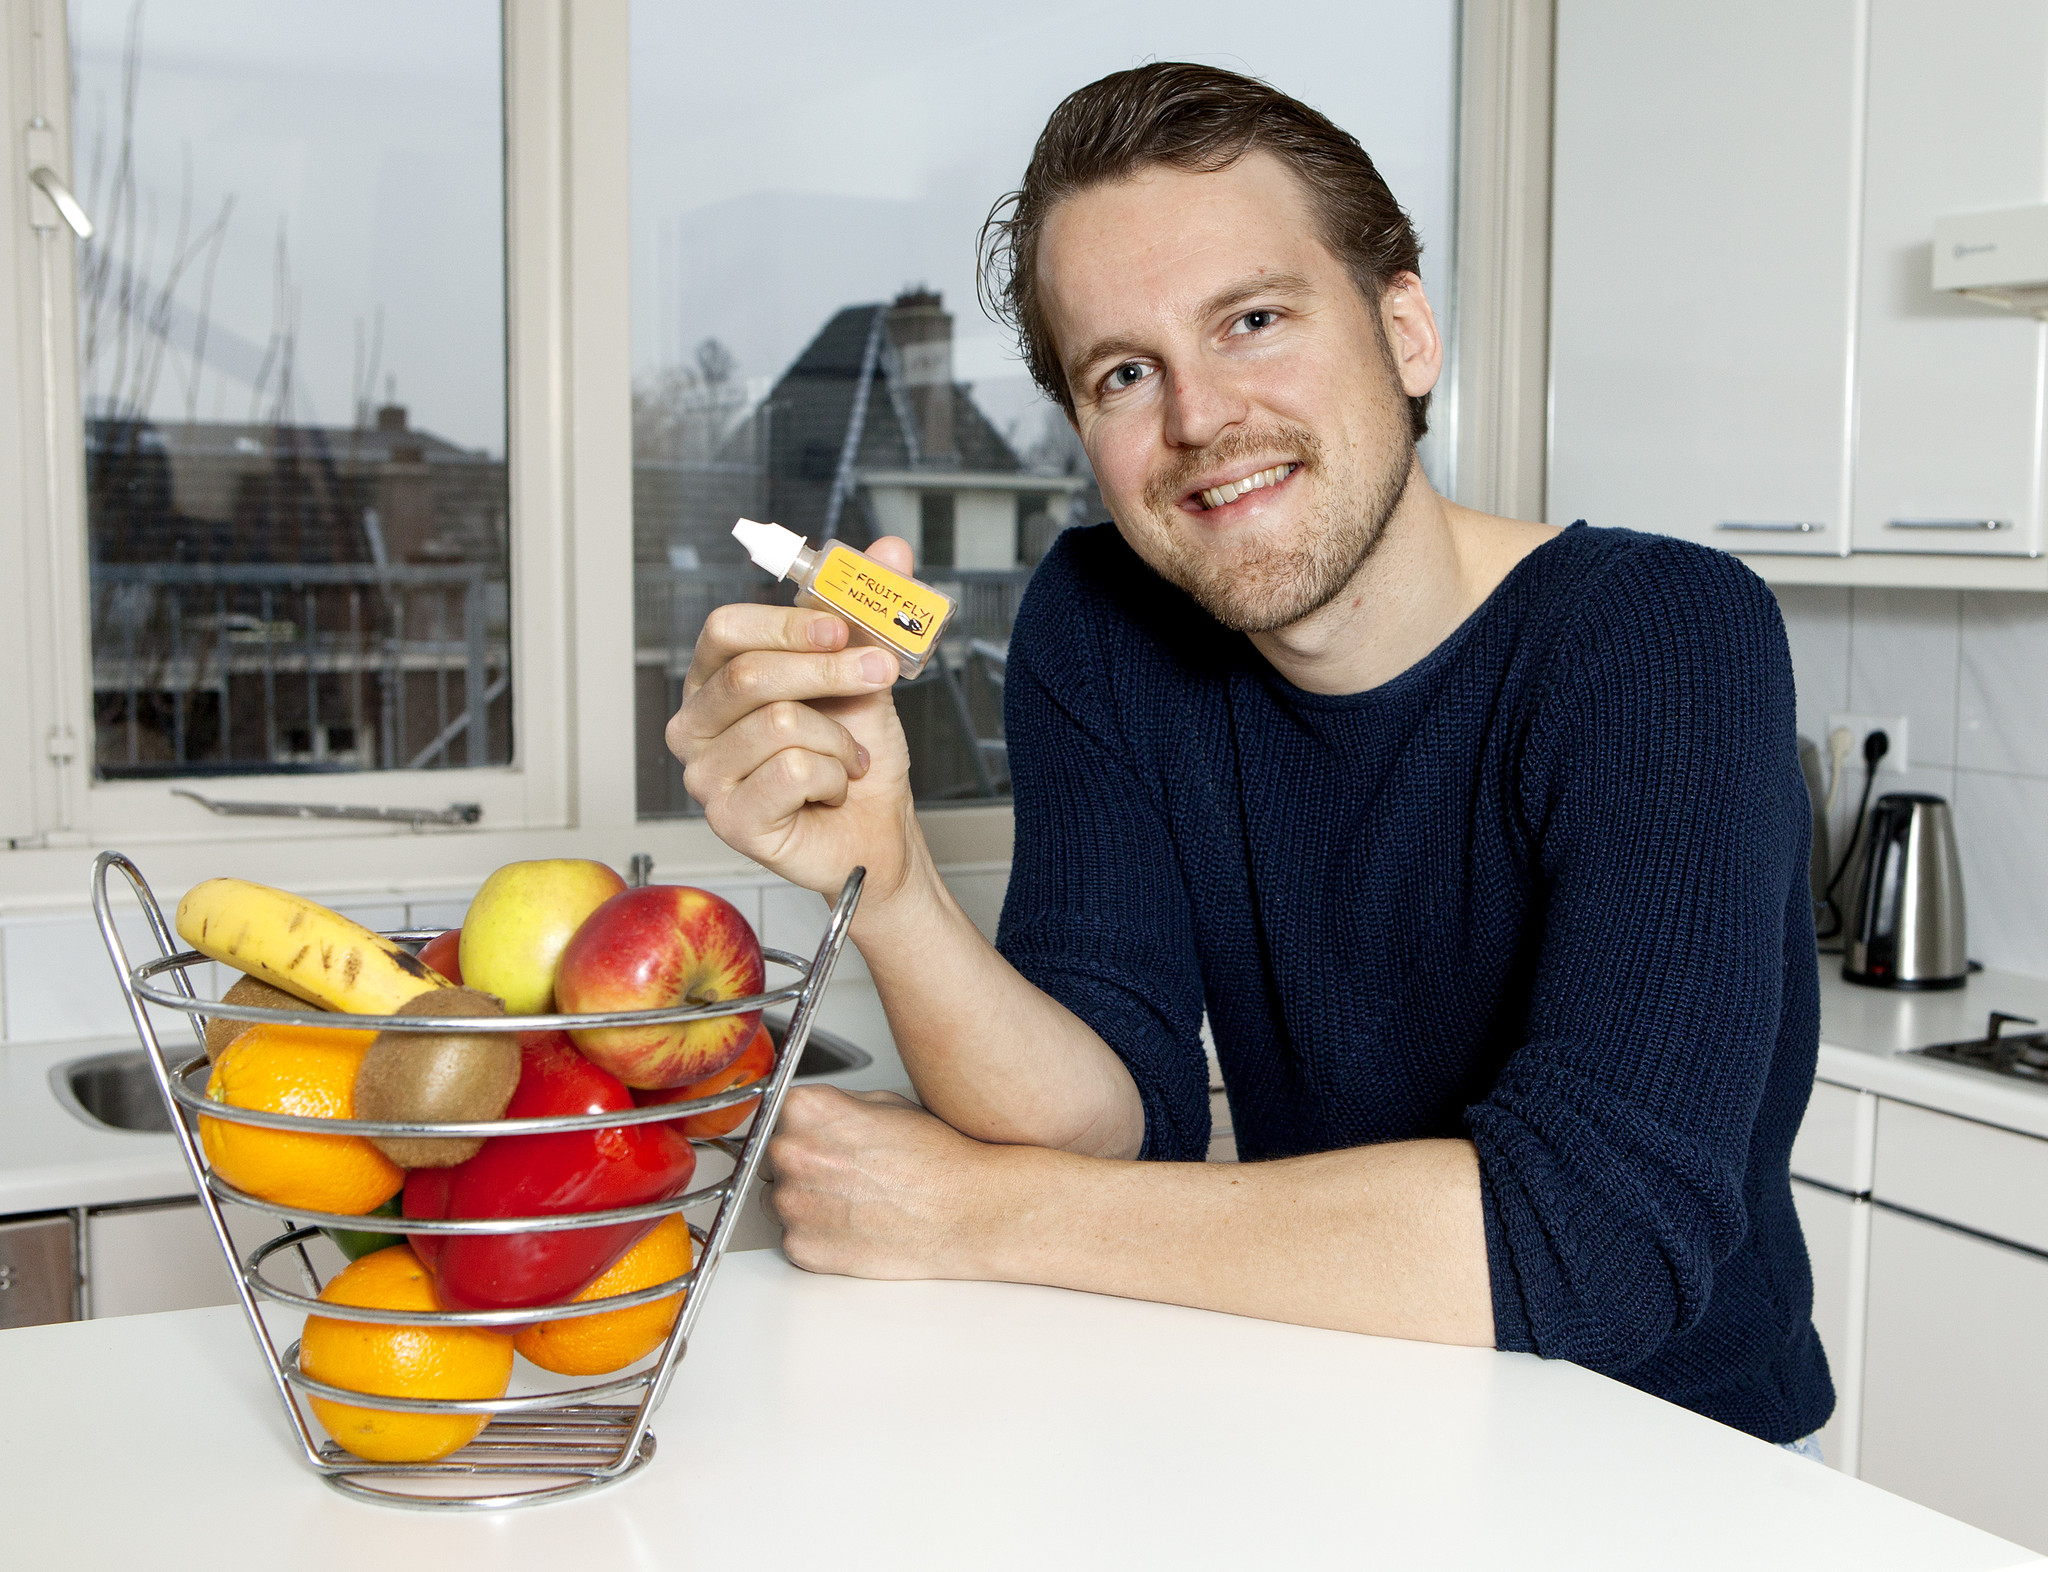 Fruit Fly Ninja's founder Ferdinand van der Neut with one of the prototypes, at home in Amsterdam (photo: De Telegraaf / Rob de Jong).